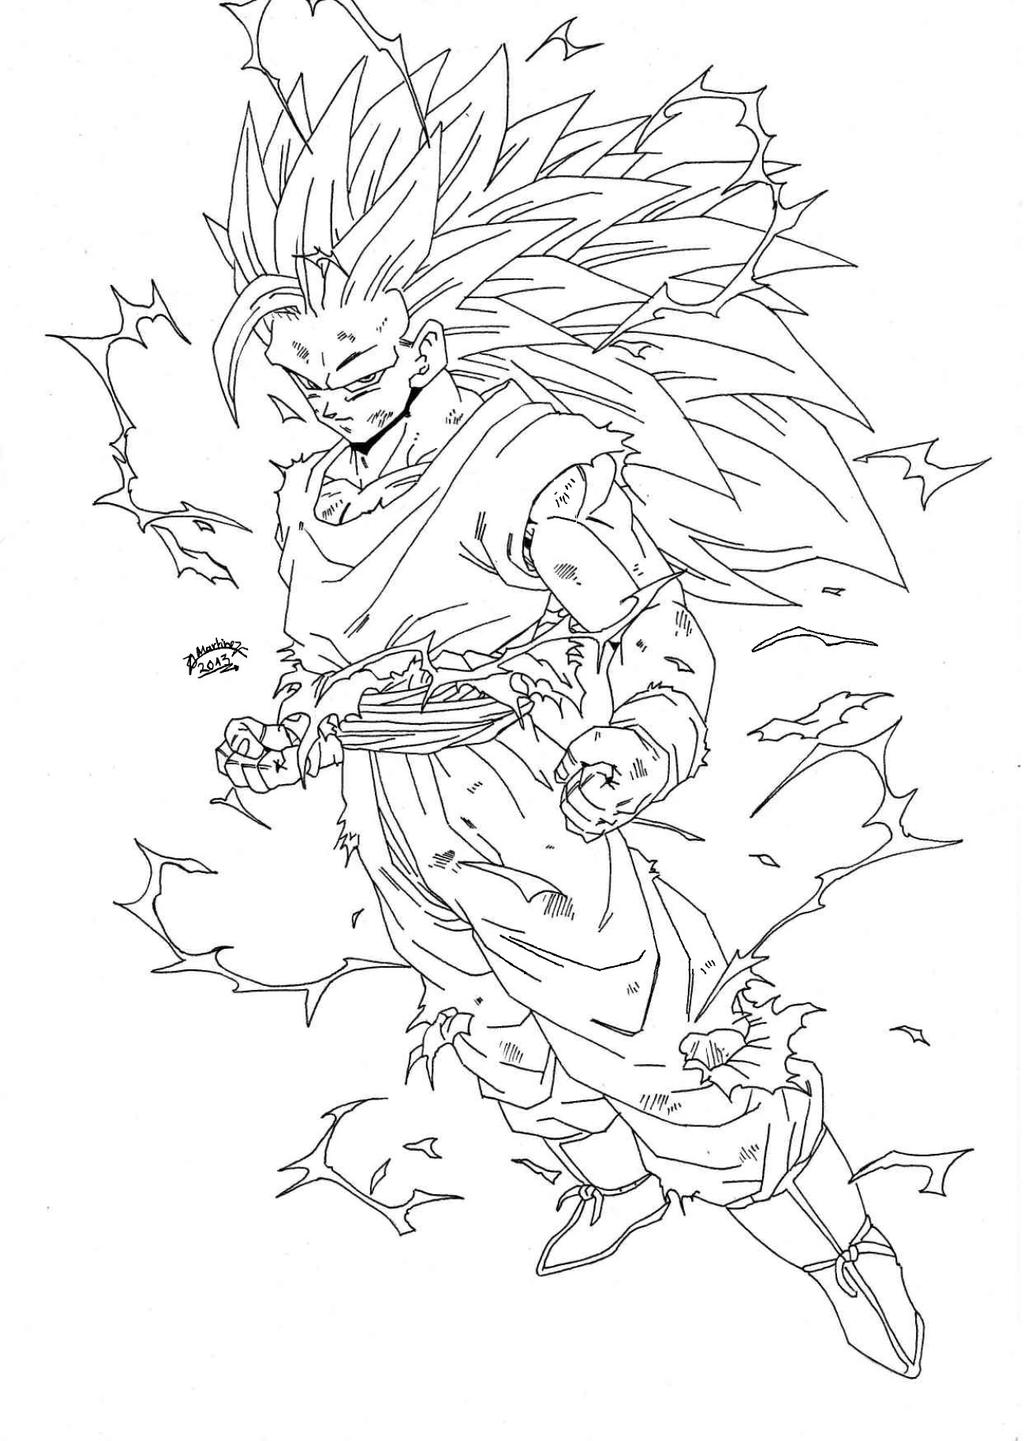 Dragonball z regreso goku super sayan 3 lineart by for Dbz coloring pages goku